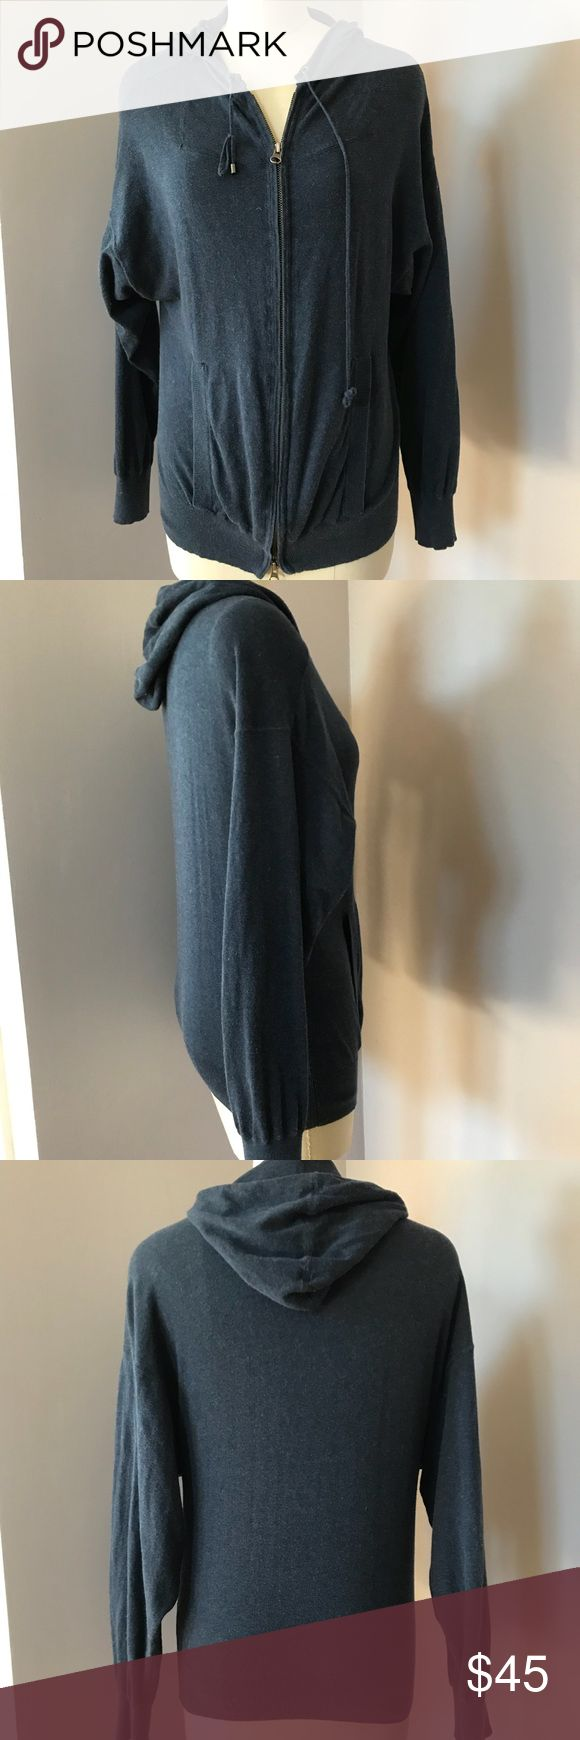 Haute Hippie blue lightweight zip up size S Haute hippie nude. Blue color. Size S. In good used condition. The ties have knots that could probably come undone. No trades please. Haute Hippie Tops Sweatshirts & Hoodies